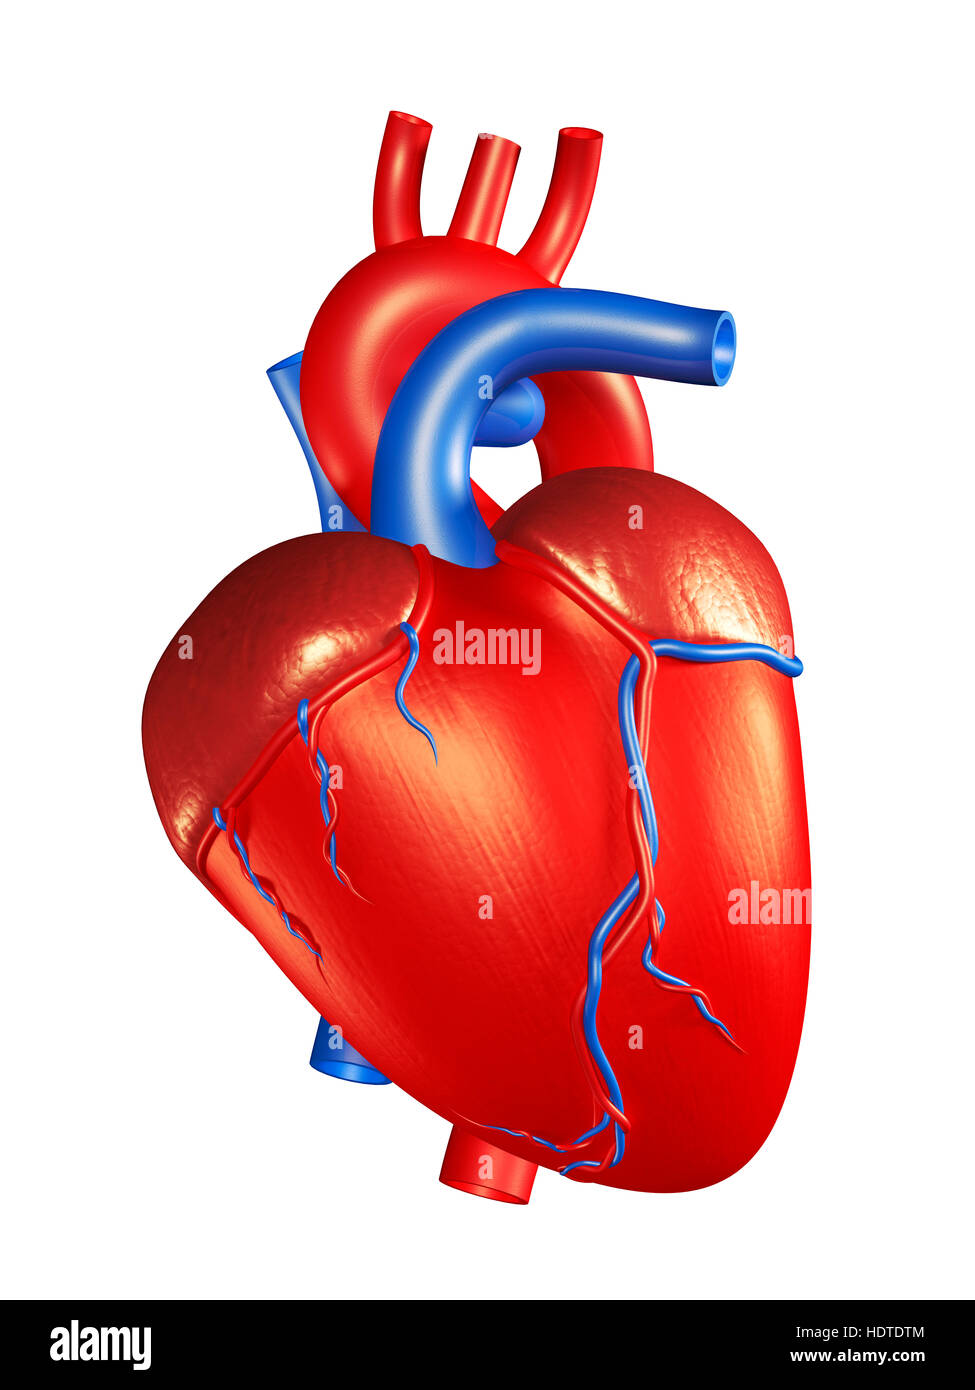 Human Heart High Resolution Stock Photography And Images Alamy